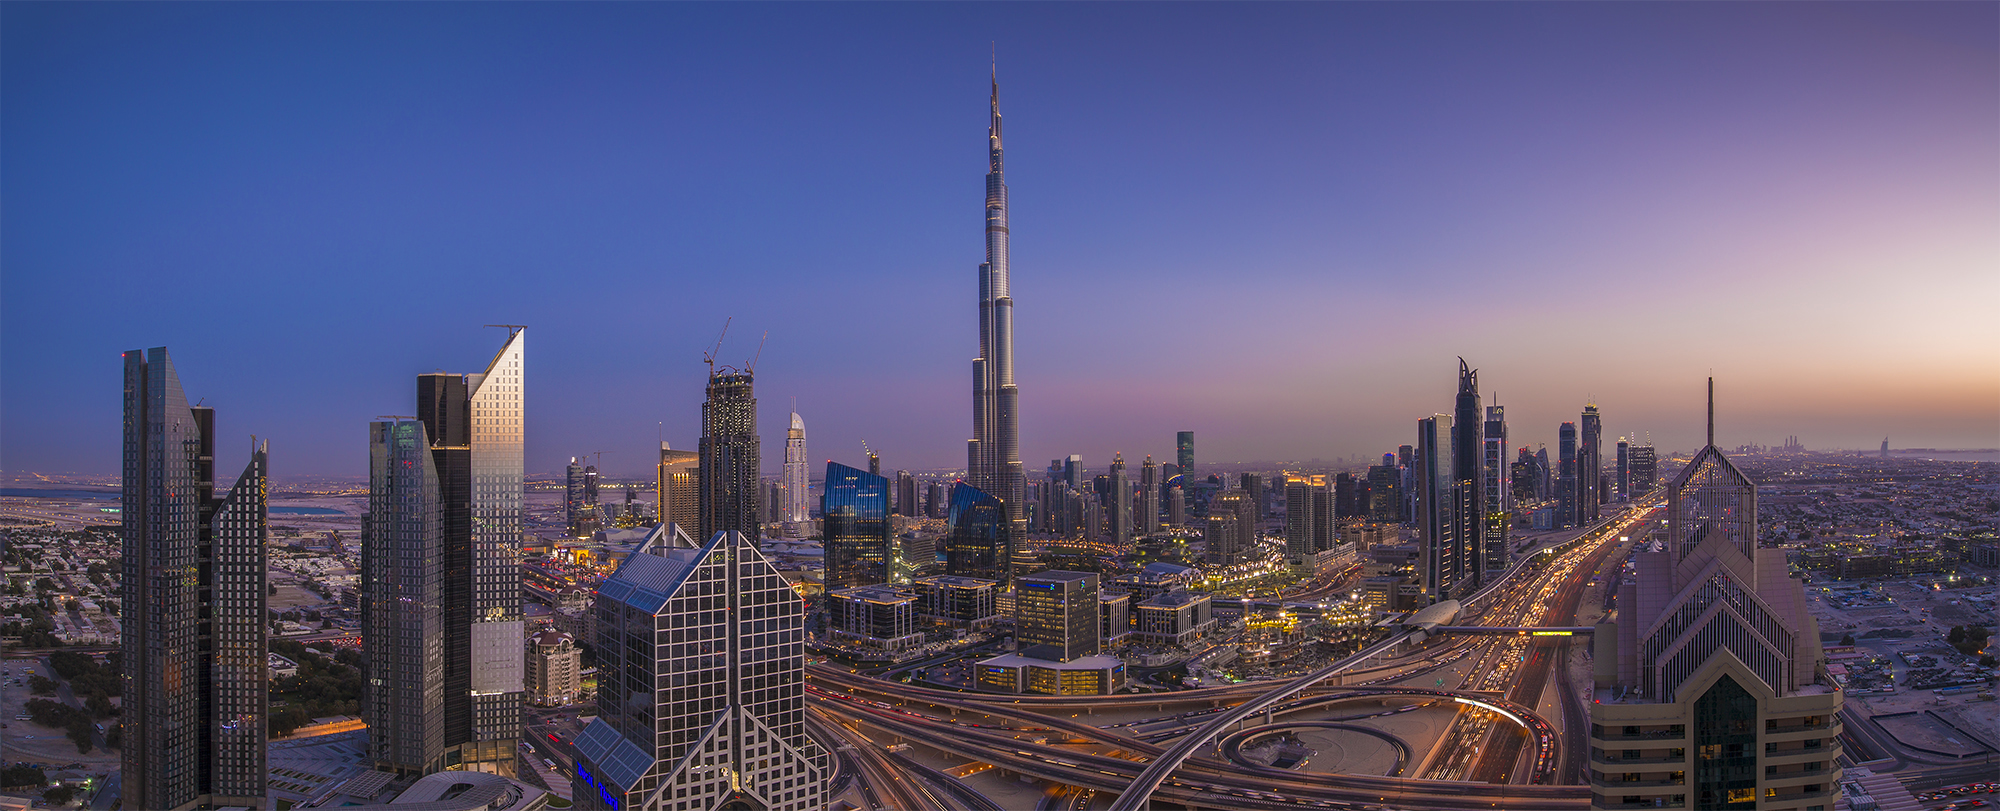 Panoramic: Burj Khalifa at Dusk